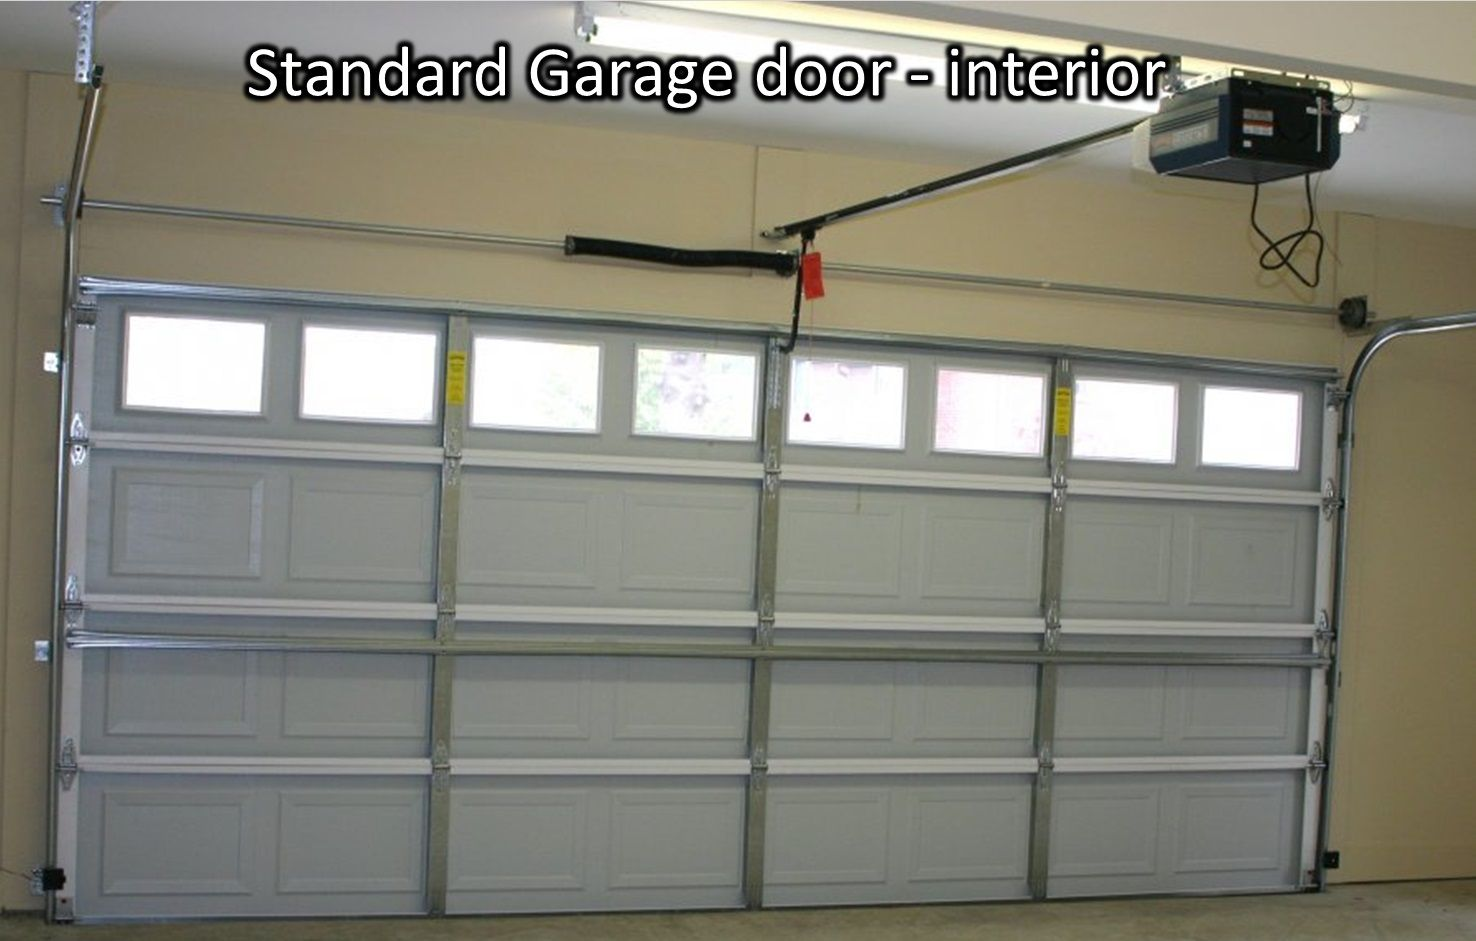 amazing promo incredible headroom nation manual chamberlain garage trend installation opener for craftsman sasg and code pics overhead door style hp repair sync low